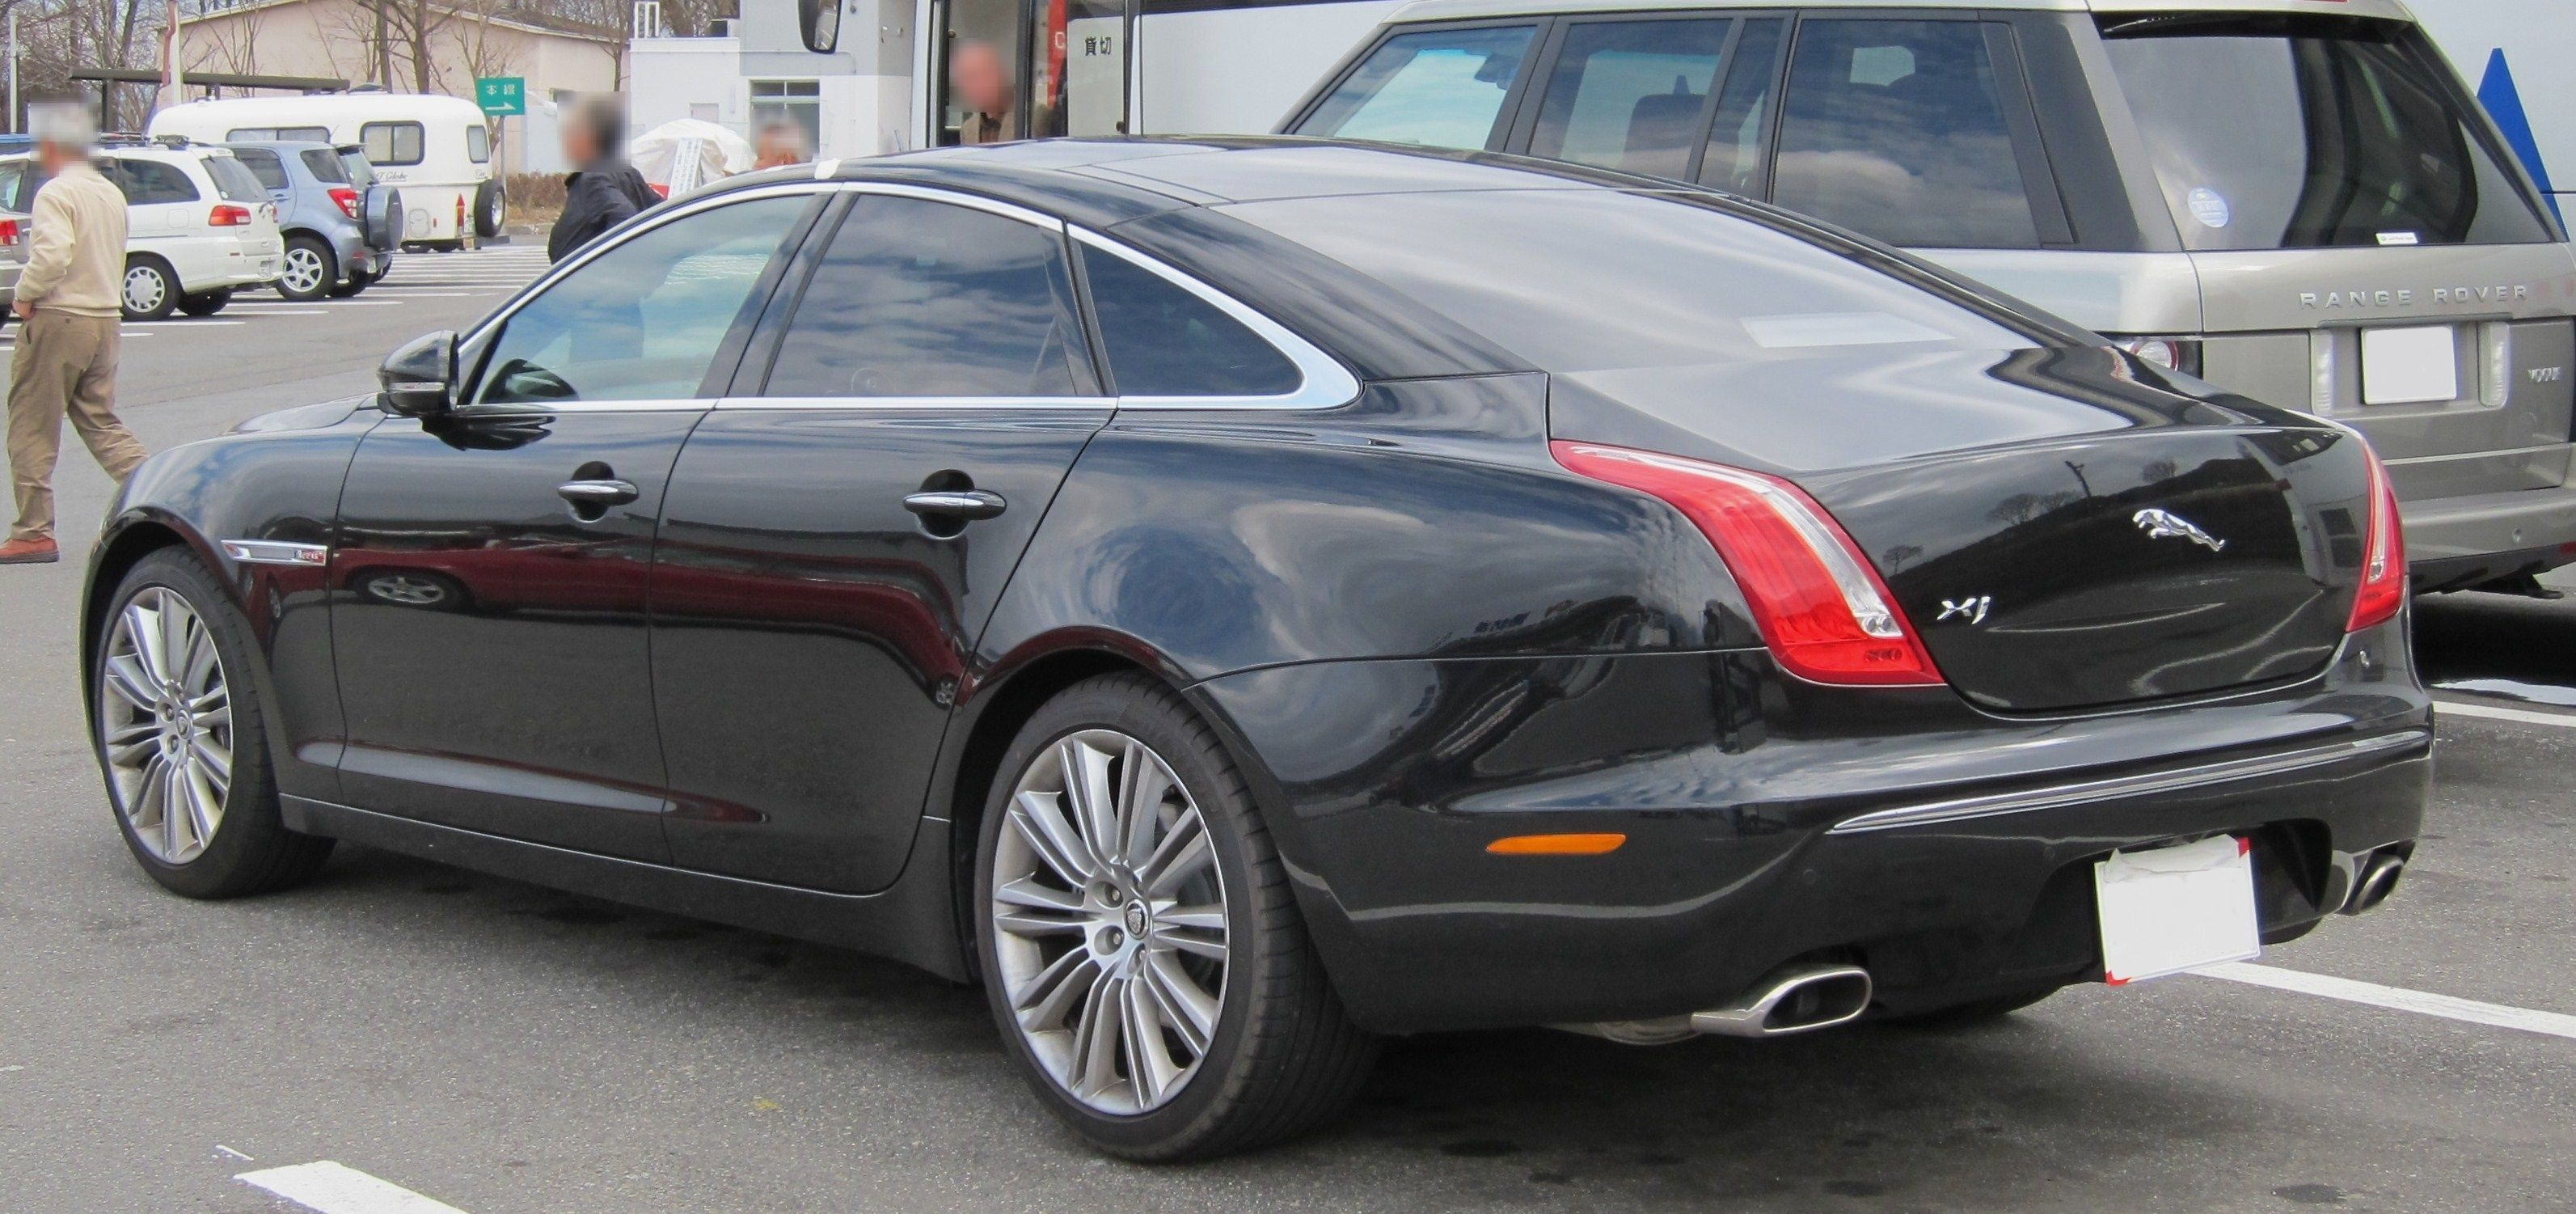 Jaguar 2018 Xj >> Jaguar XJ #7 - high quality Jaguar XJ pictures on MotorInfo.org